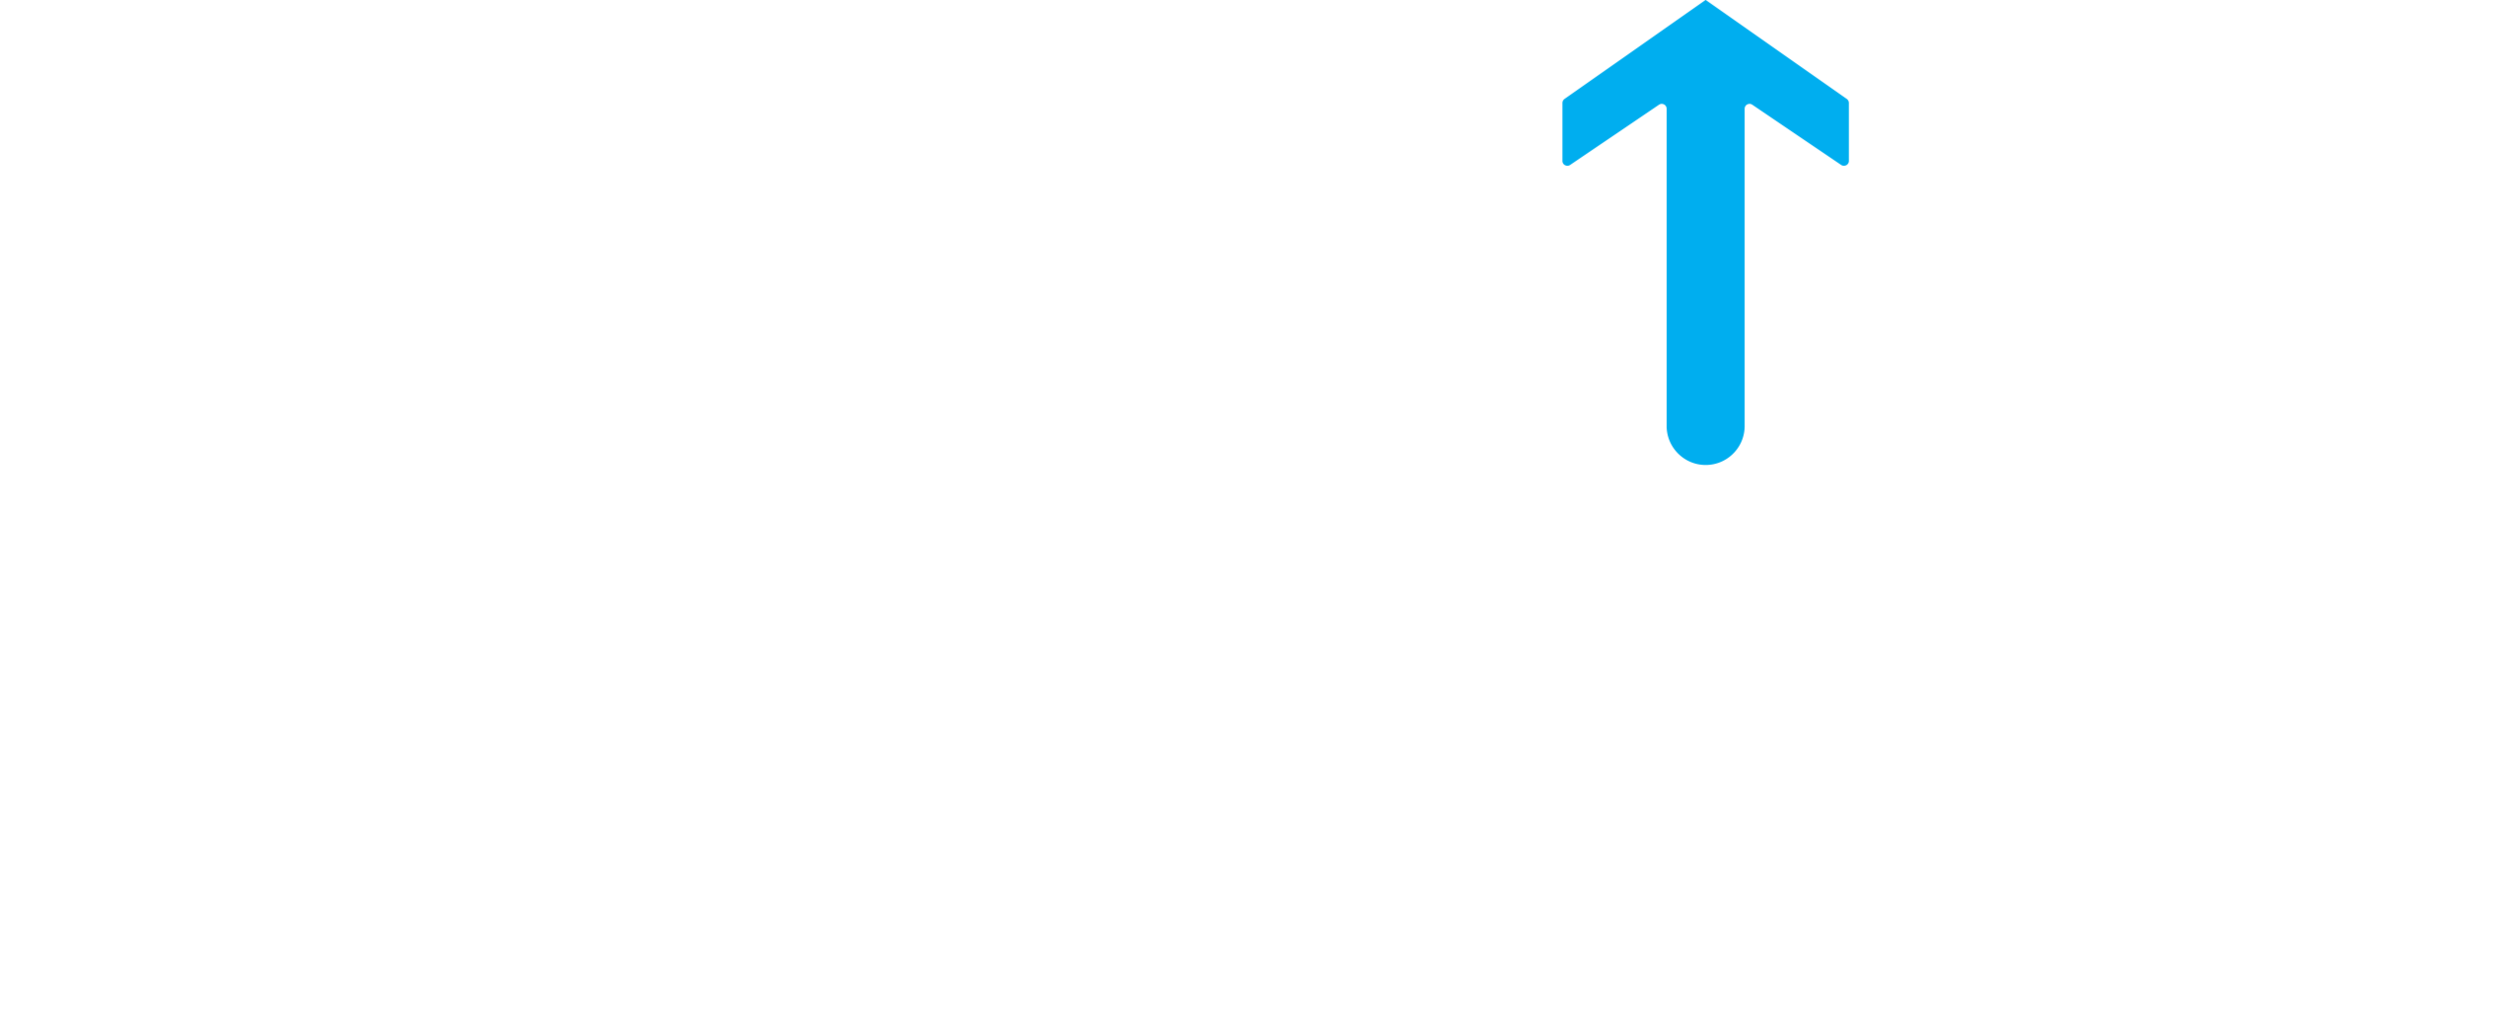 Startup Institute offers  courses , and programs built to give people the  skills ,  mindset , and  network  to build careers they love, doing work that matters, with  innovative local companies .